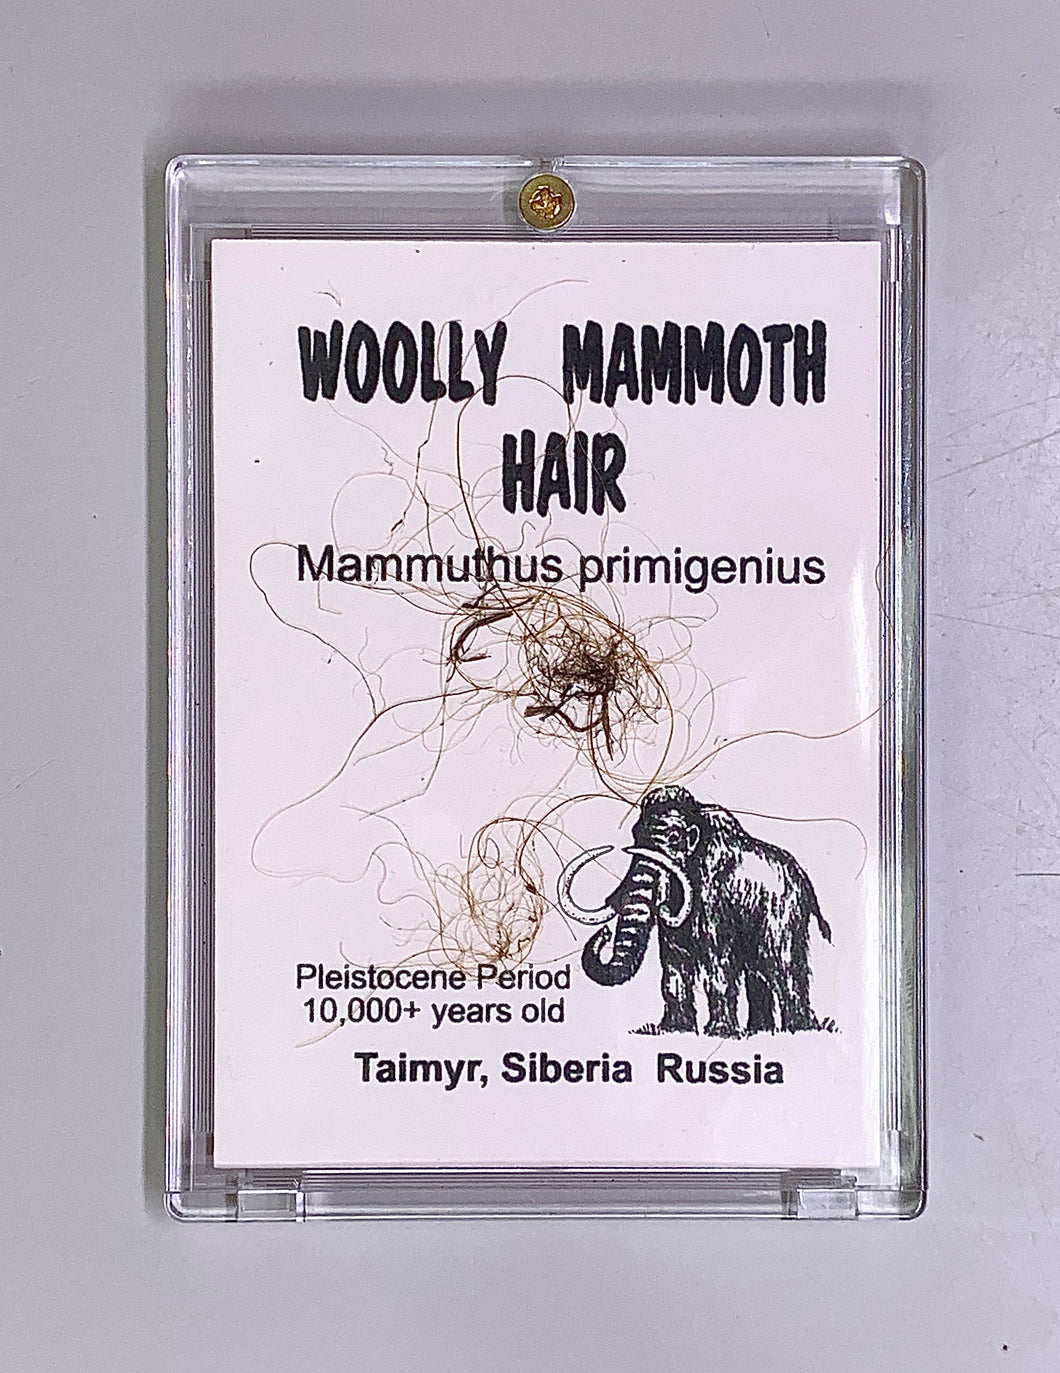 Mammoth hair in a resin casing, labelled Mammuthus primigenius, Pleistocene Period, 10,000 years old, Taimyr, Siberia, Russia.